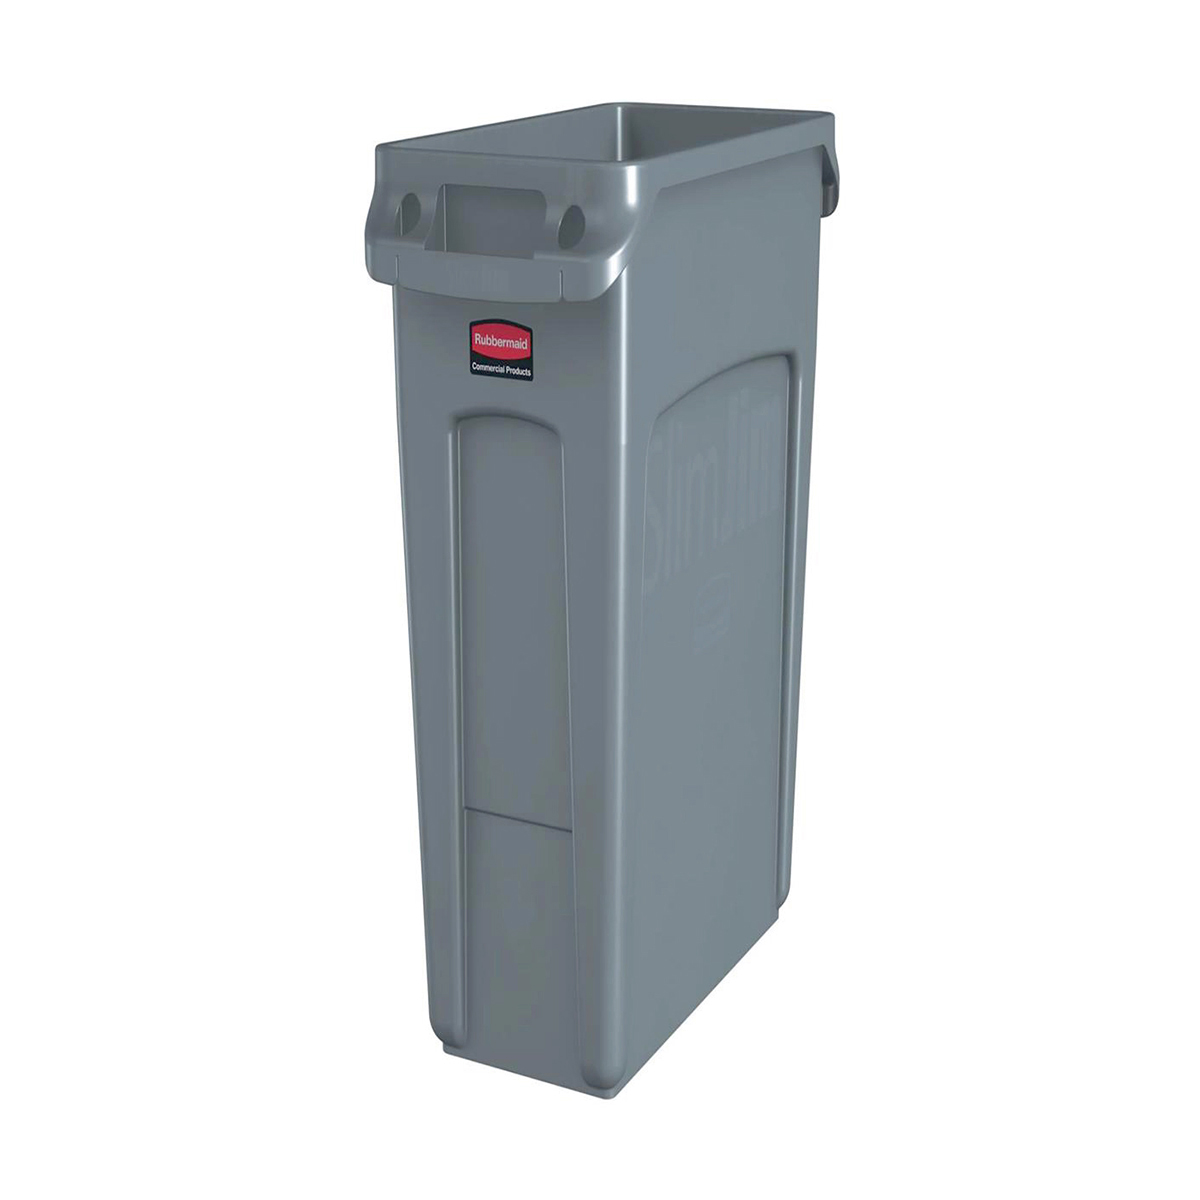 Recycling Bins Rubbermaid Slim Jim Recycling Container Bin 60 Litre Capacity 558x279x635mm Grey Ref 1971258